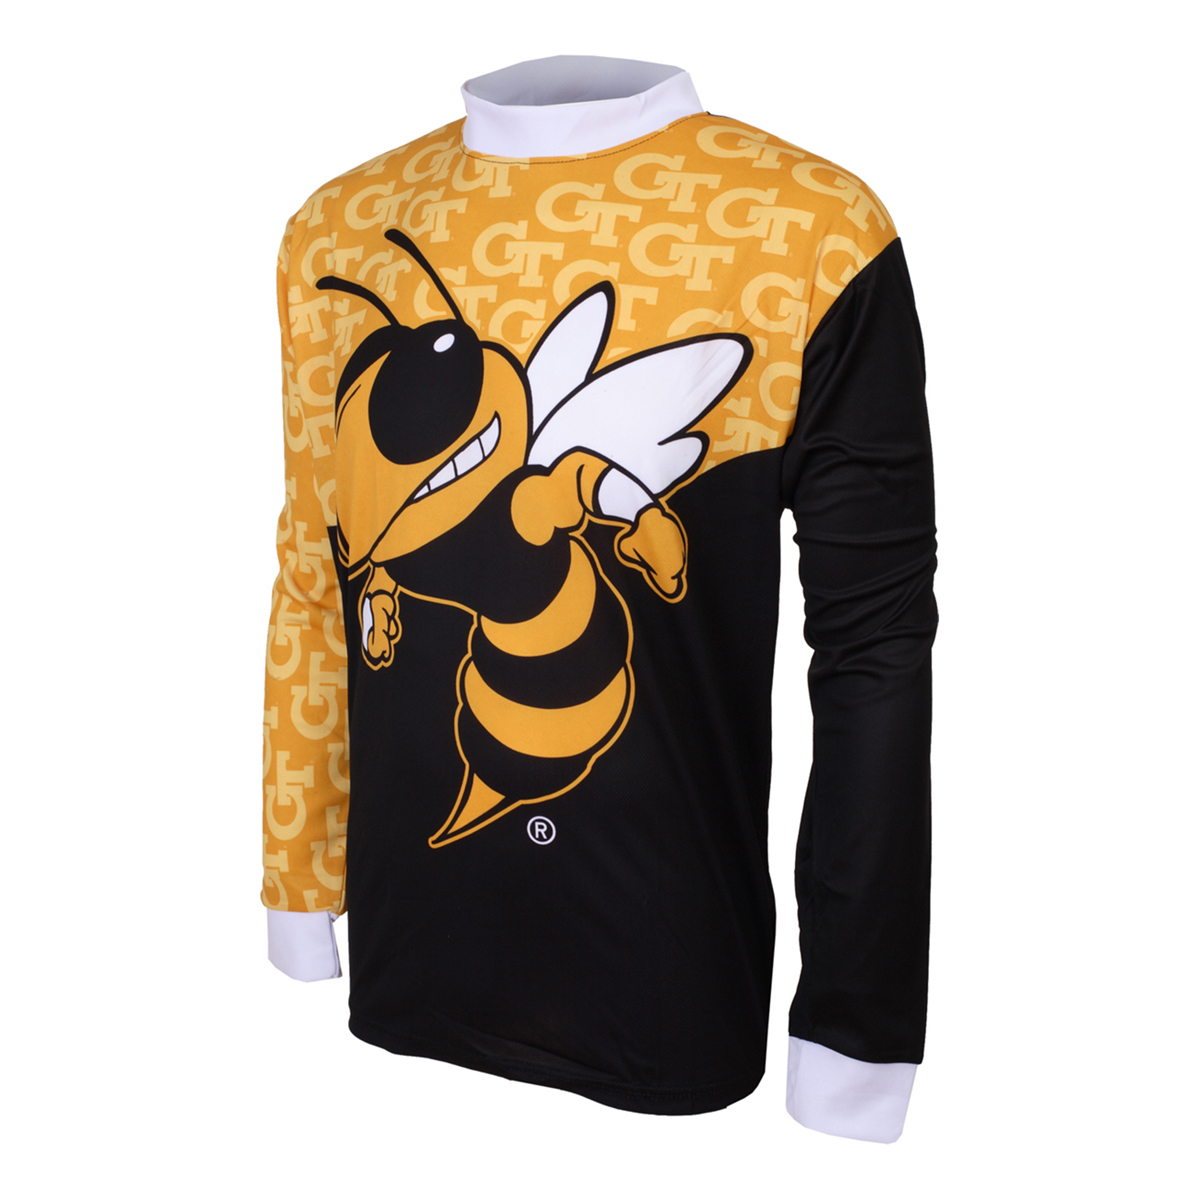 Adrenaline Promotions Georgia Tech Buzz Long Sleeve Mountain Bike Jersey